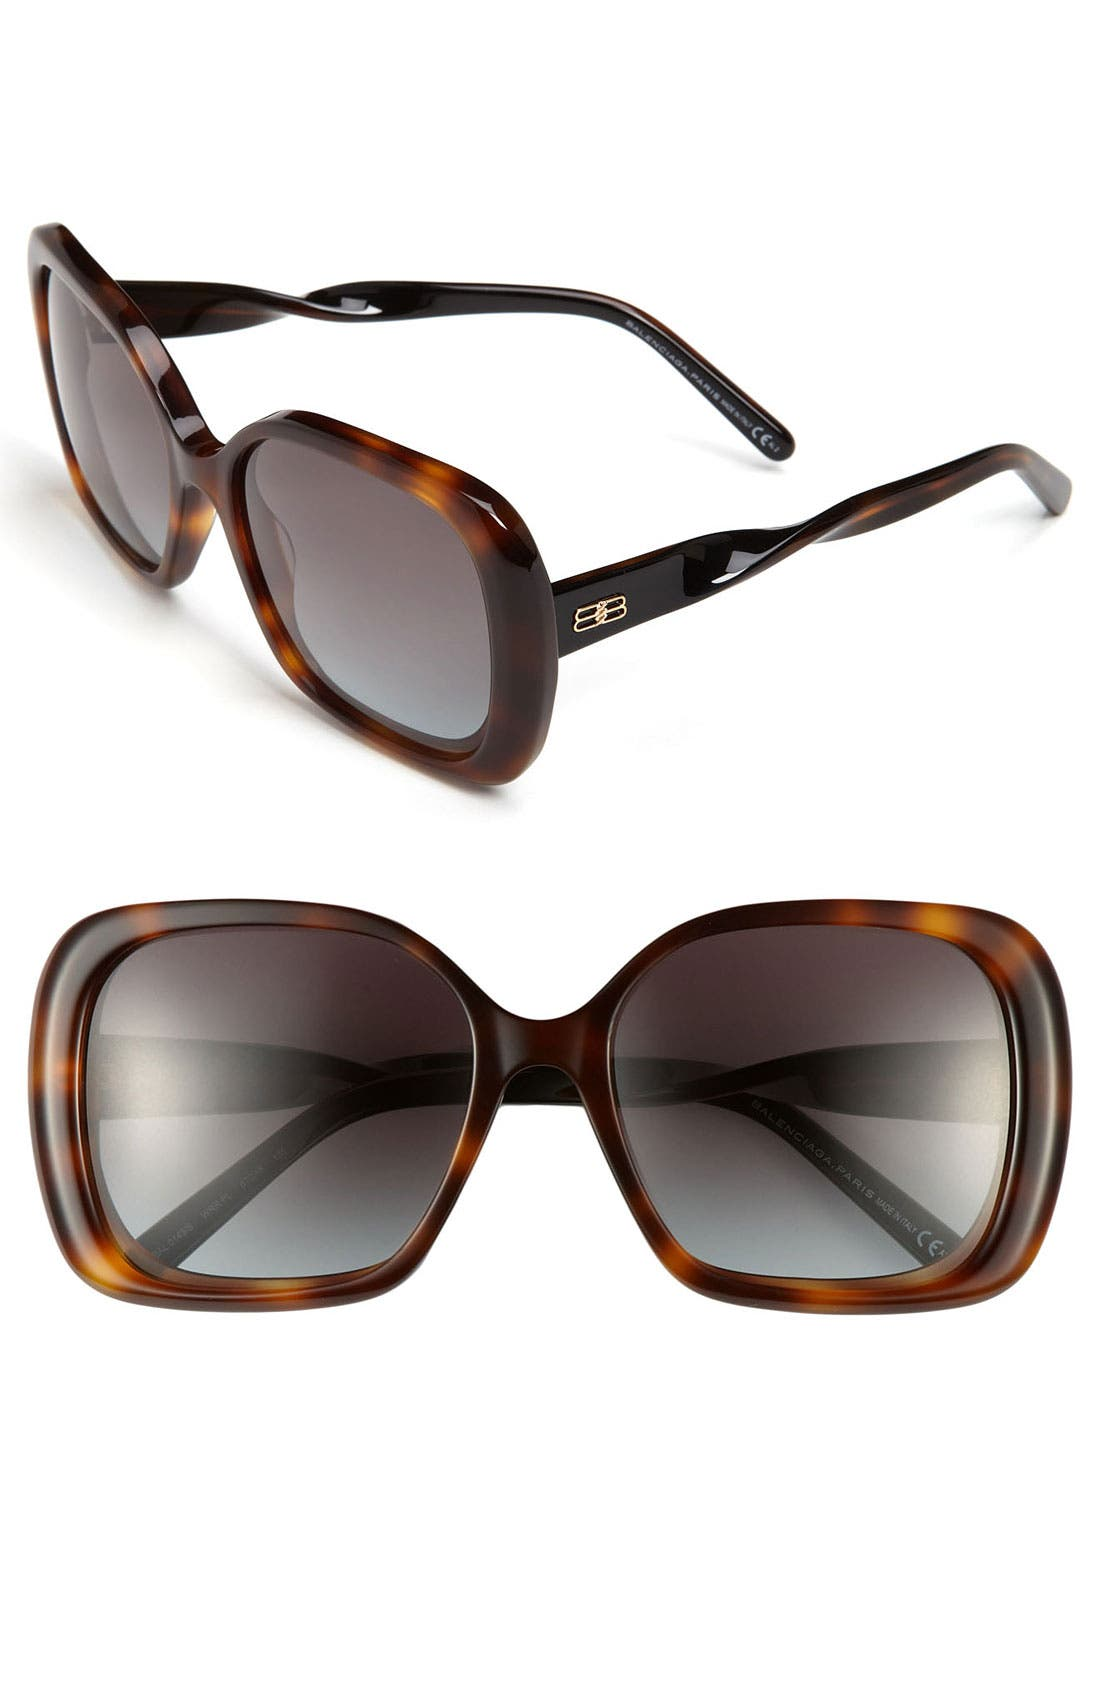 Main Image - Balenciaga Paris Oversized Square Sunglasses